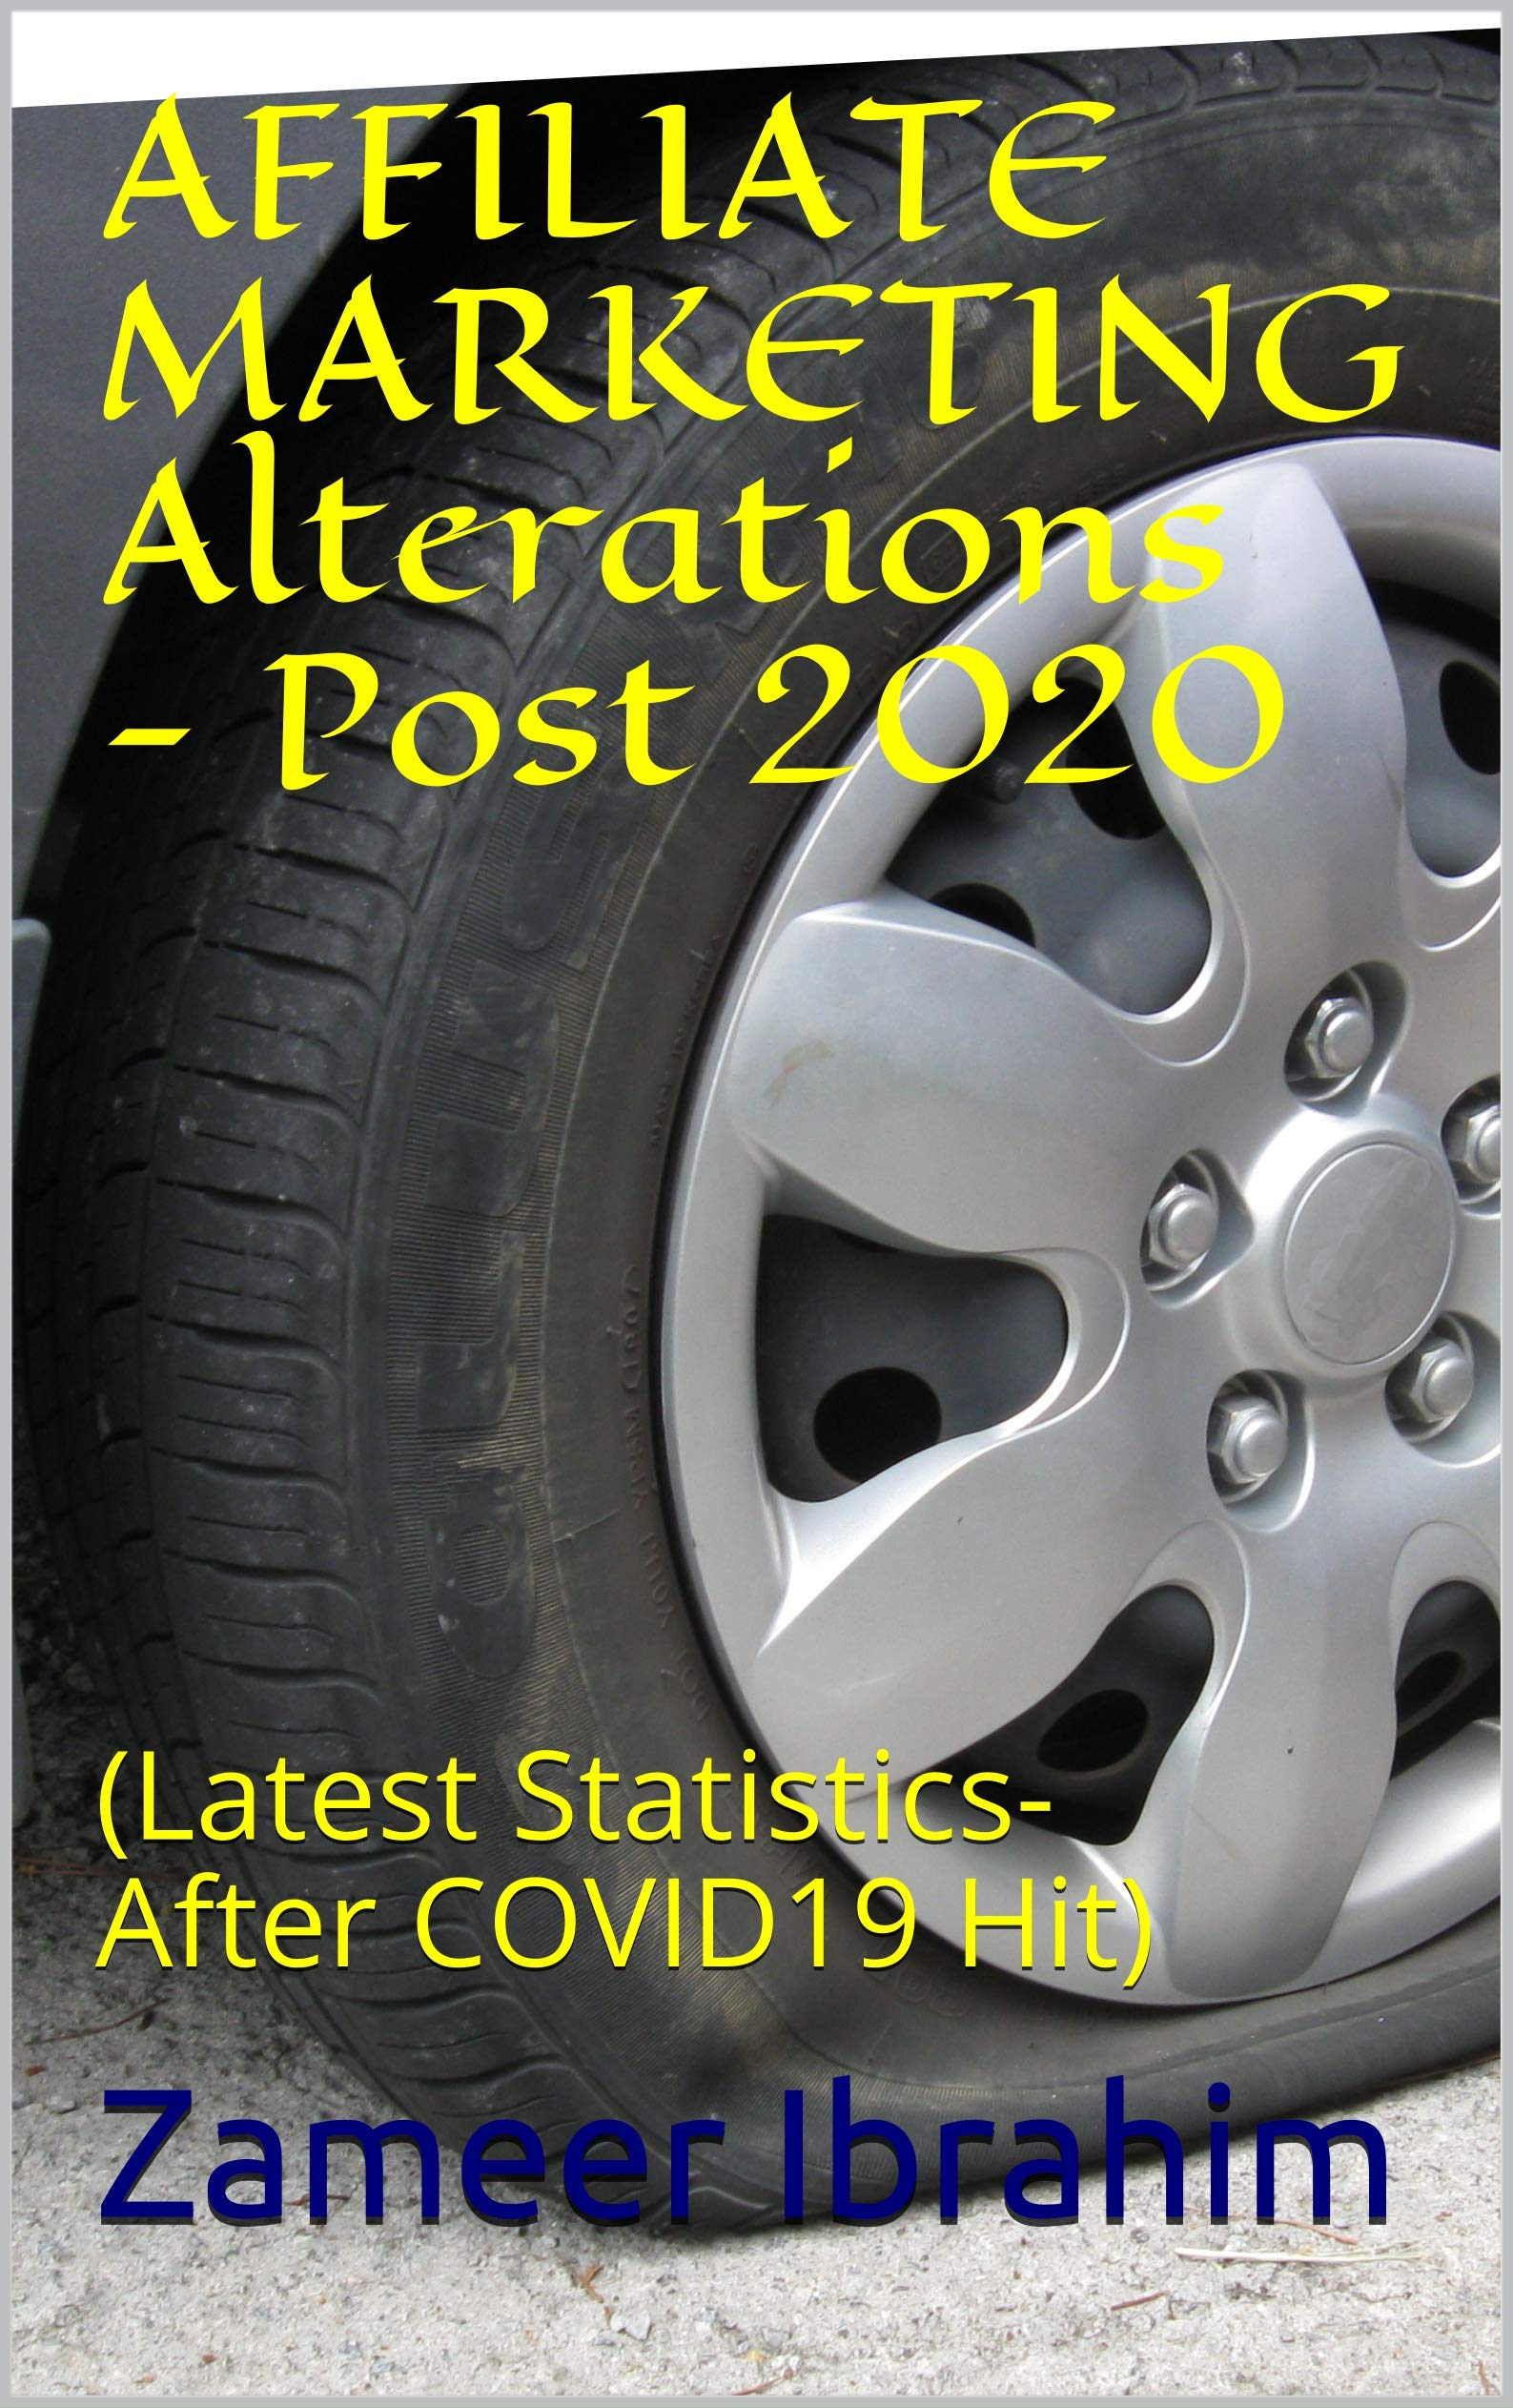 AFFILIATE MARKETING ALTERATIONS - POST 2020: (Latest Statistics-After COVID19 Hit )